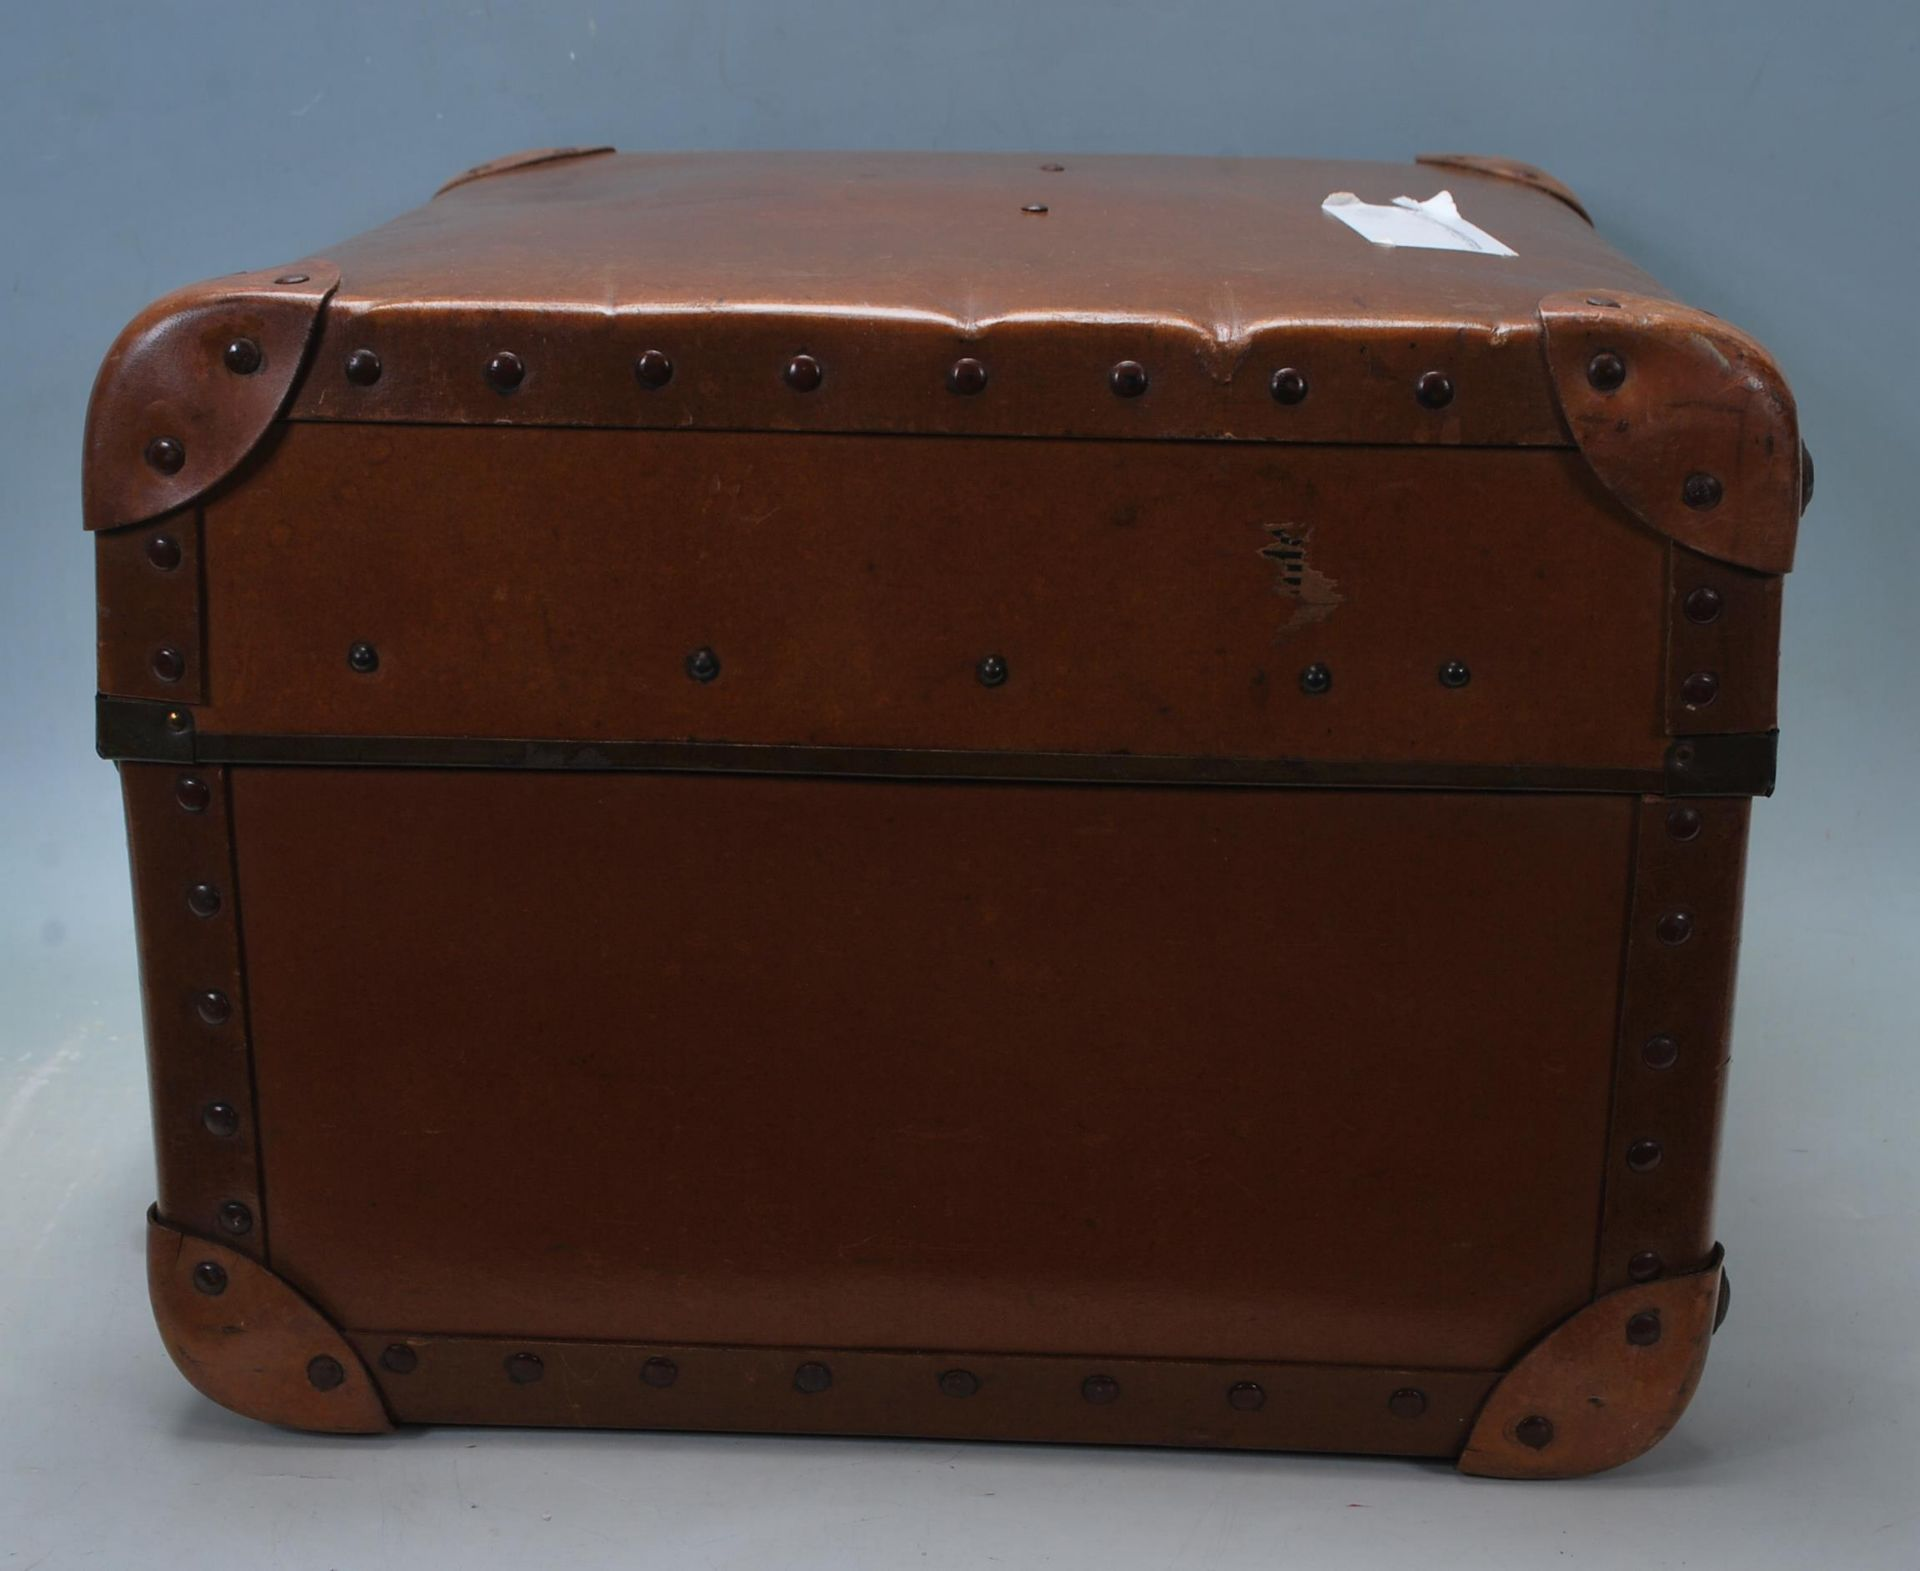 ANTIQUE EARLY 20TH CENTURY LEATHER SUITCASE - Image 3 of 5